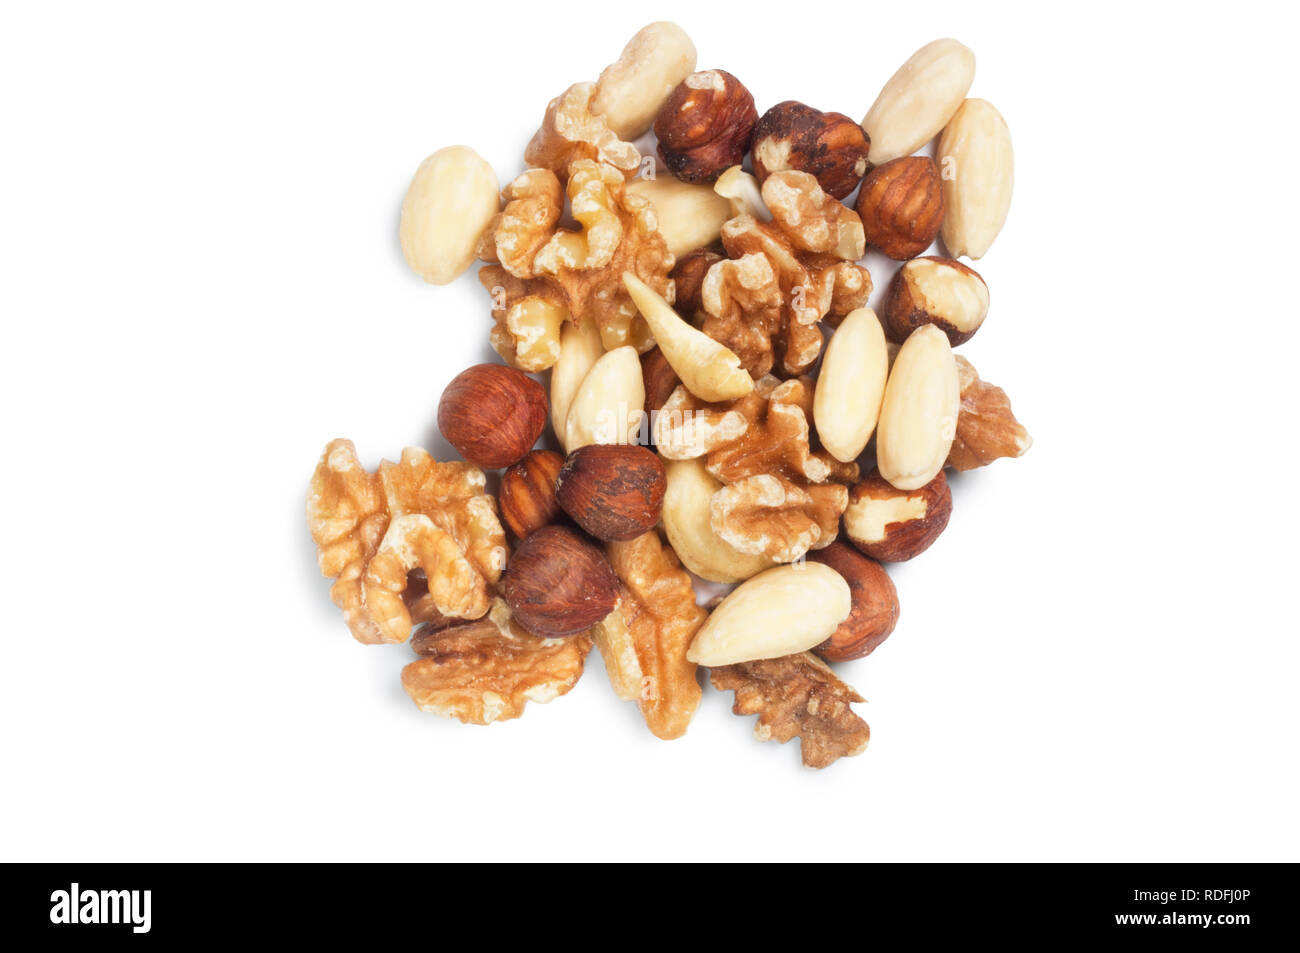 studio shot of mixed nuts isolated against a white background - John Gollop - Stock Image